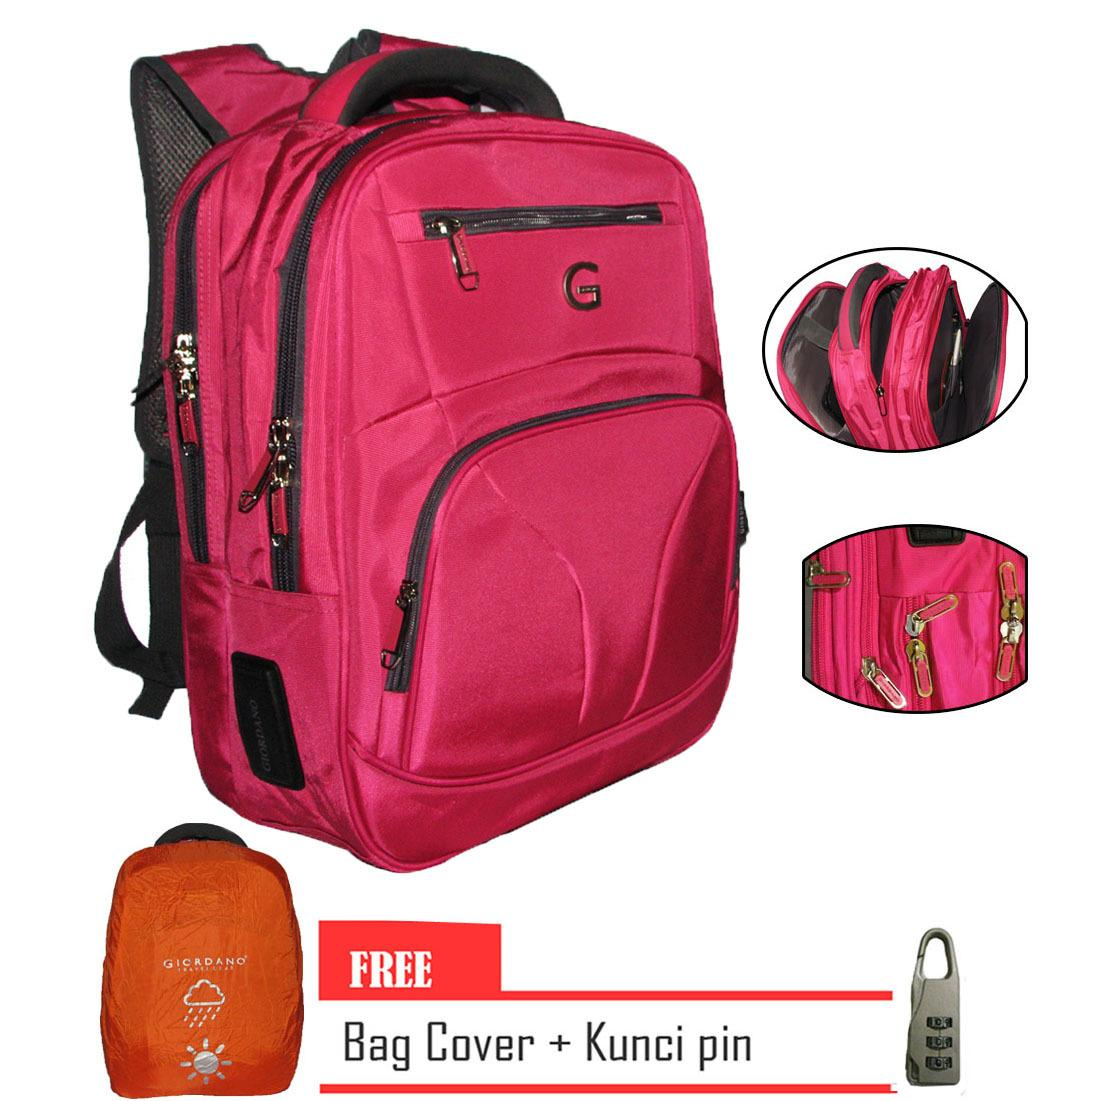 Beli Giordano Backpack Laptop Original Import Free Pink Dengan Kunci Pin Giorgano Murah